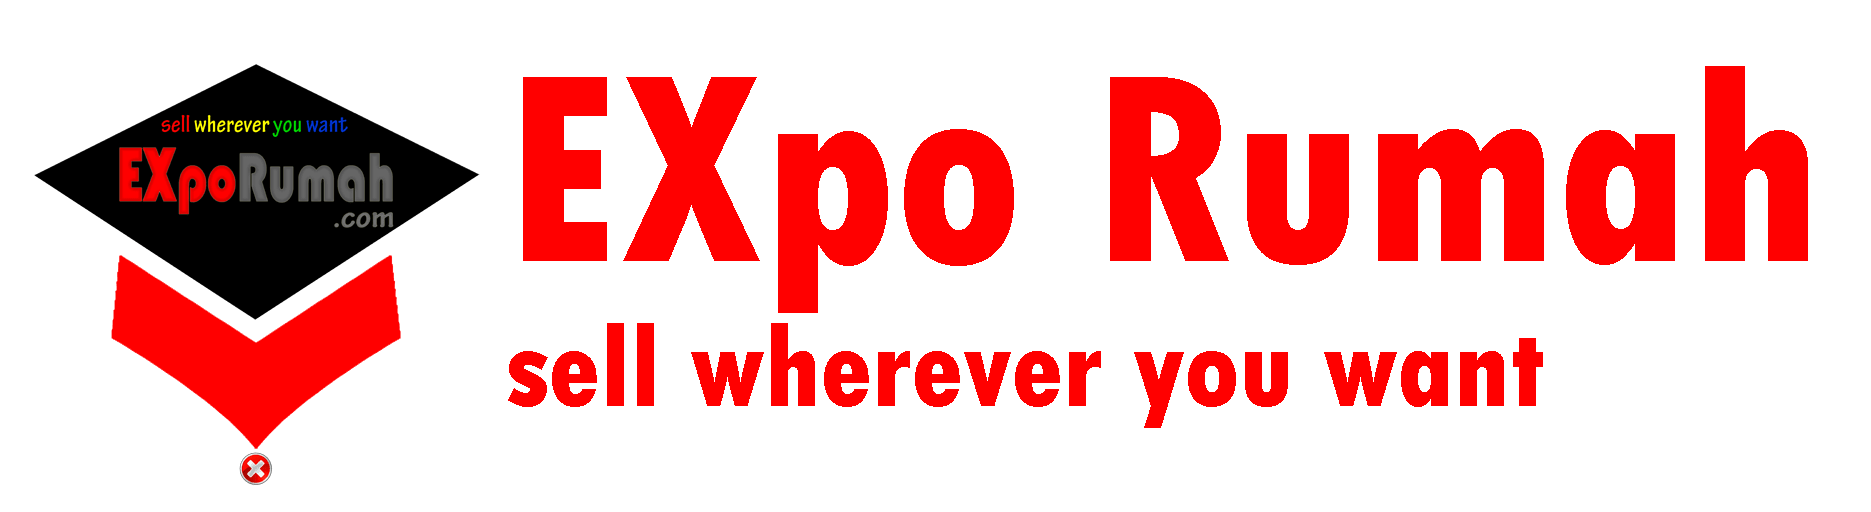 EXpo Rumah Online & Digital Marketing Property | https://EXpoRumah.com